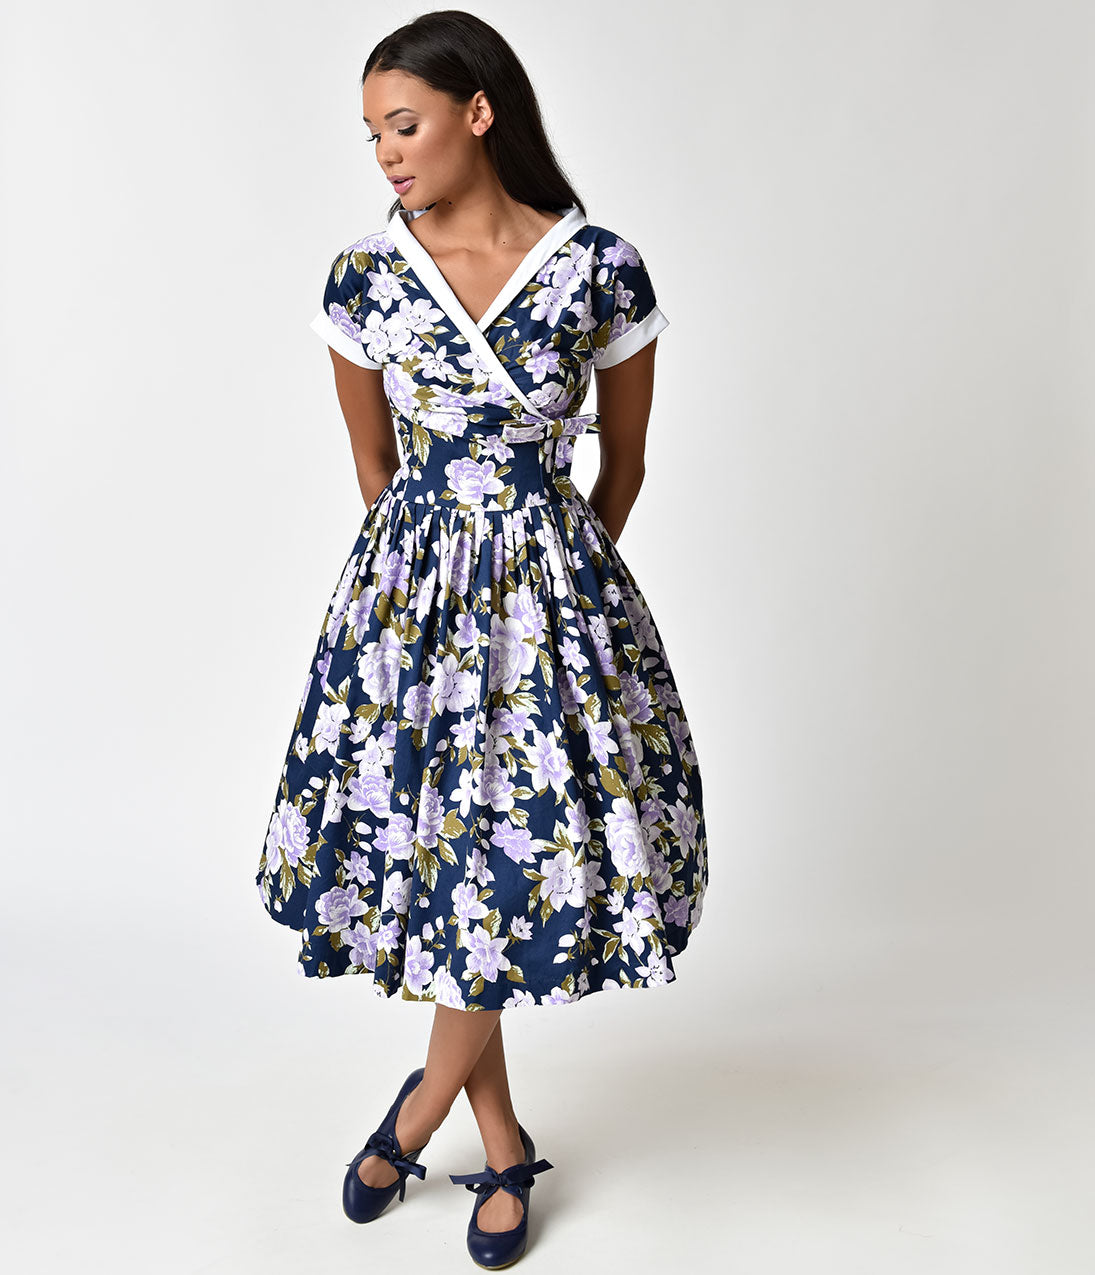 Pin Up Dresses | Pin Up Clothing Unique Vintage 1950S Style Navy  Purple Floral Pleated Waldorf Swing Dress $89.00 AT vintagedancer.com